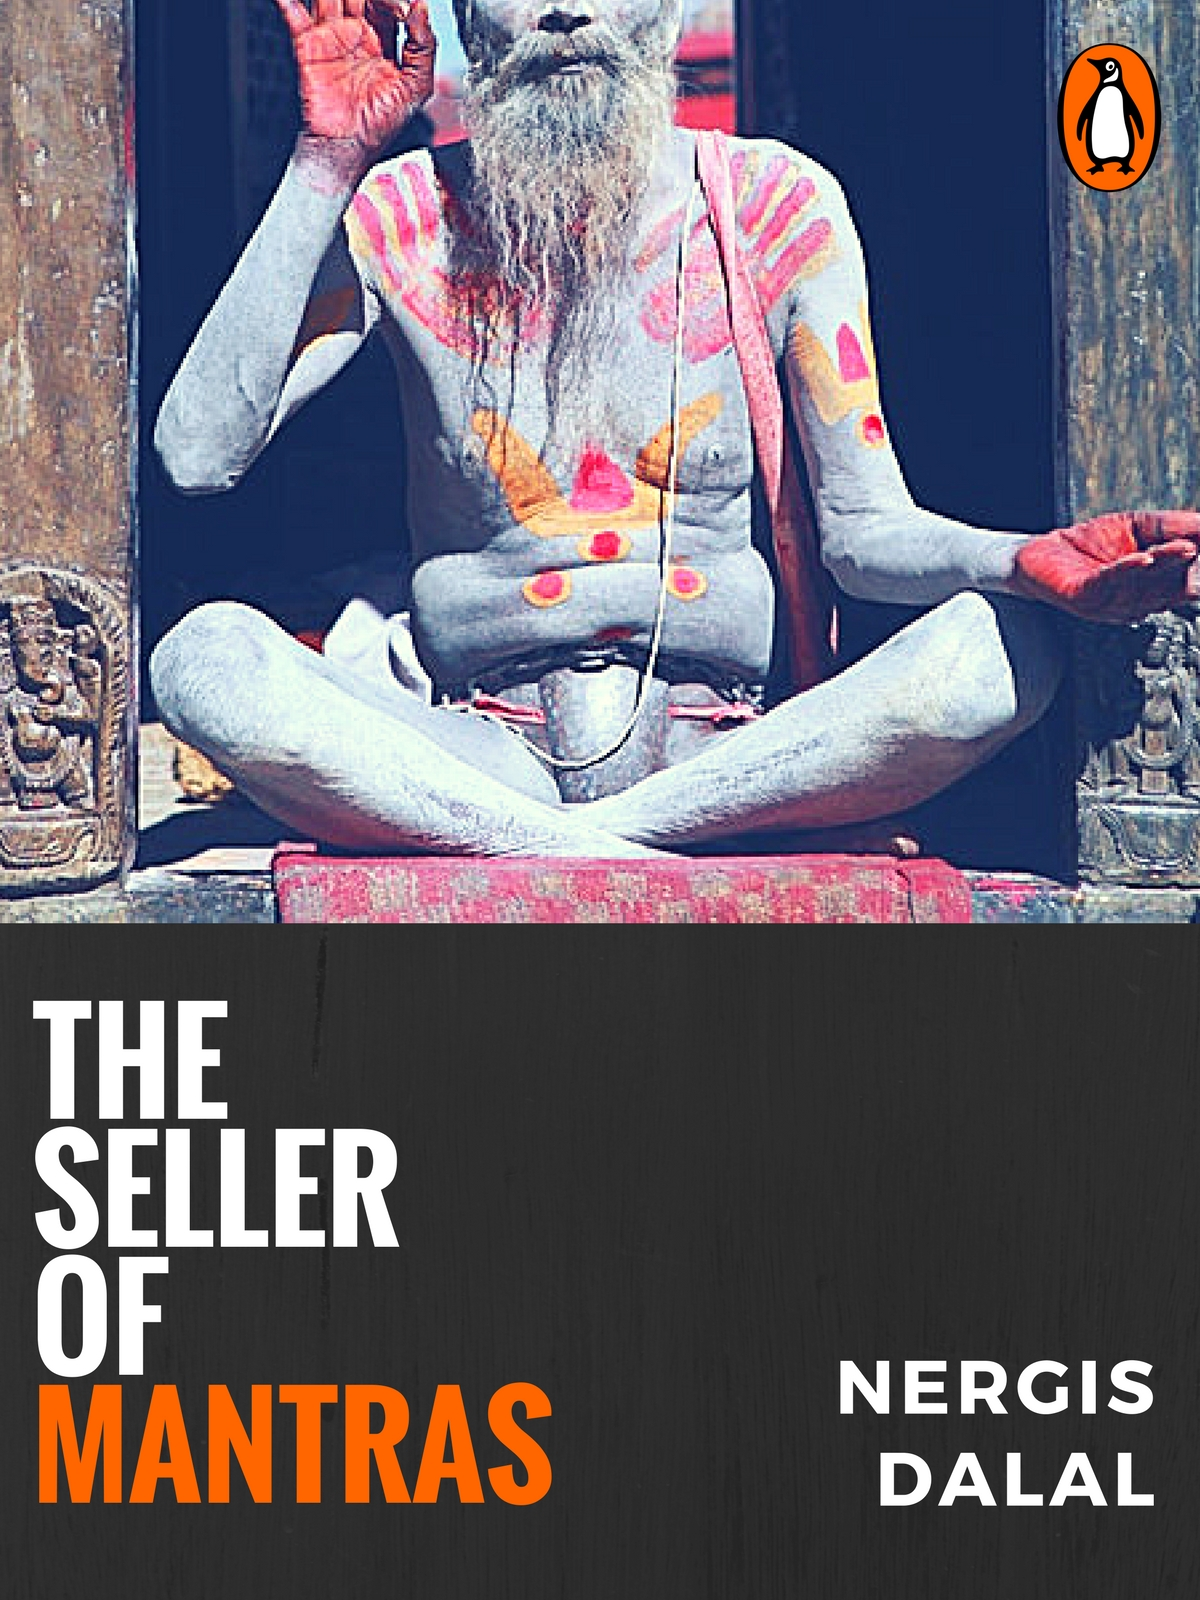 The Seller of Mantras